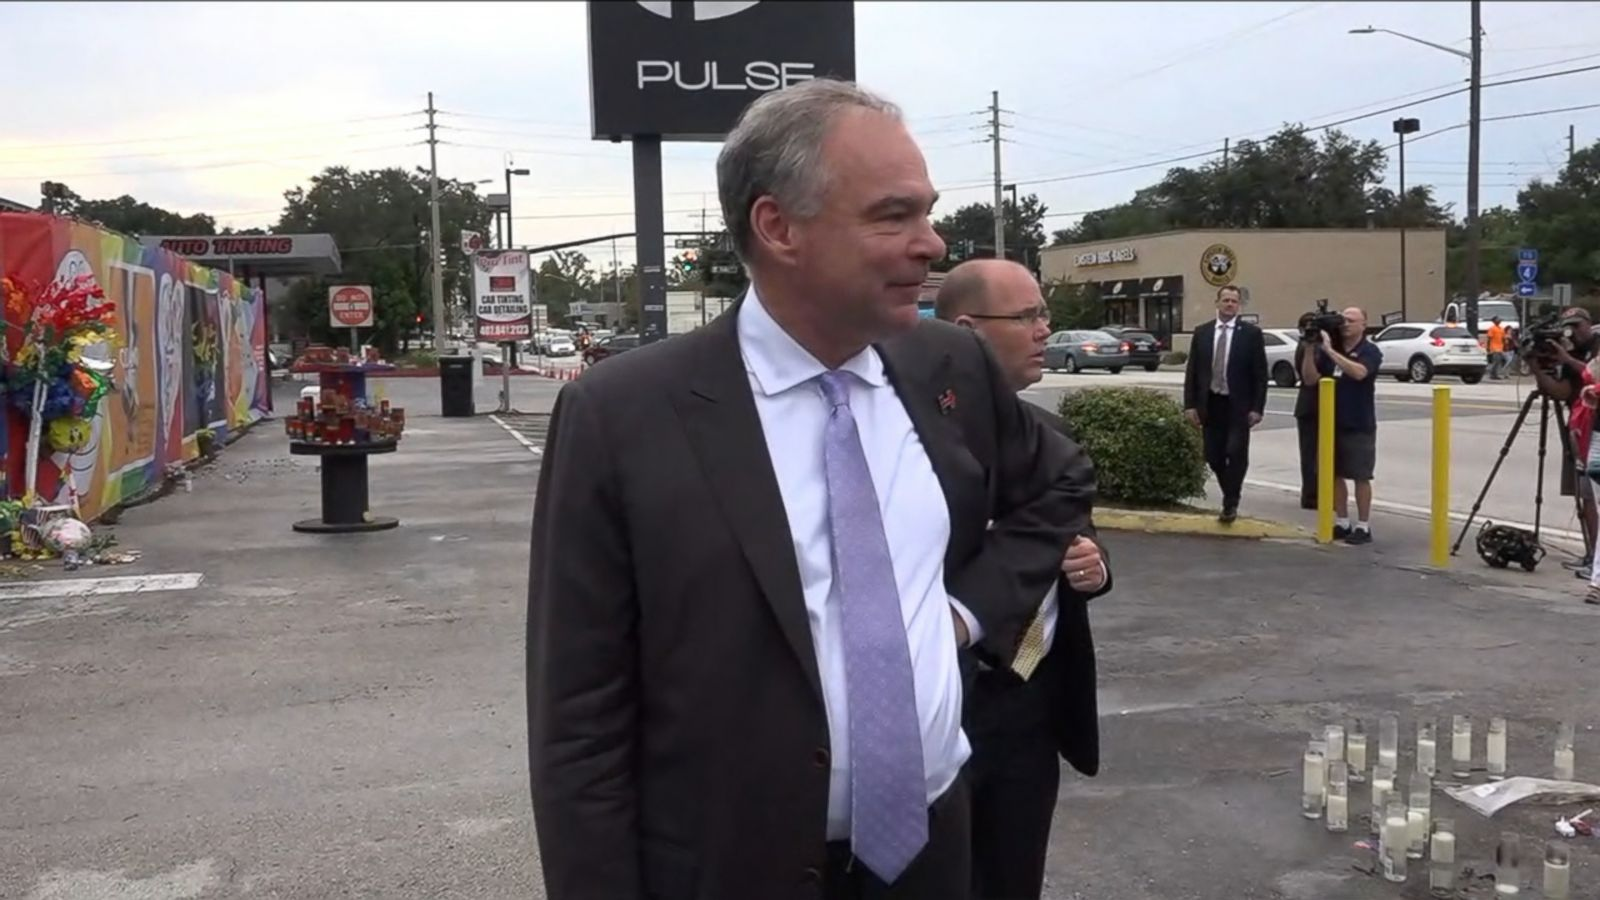 VIDEO: Hillary Clinton's running mate Tim Kaine made an emotional visit to the Pulse nightclub, the site of the Orlando massacre, Monday along with former Congresswoman Gabby Giffords, who was gravely injured in a 2011 shooting.